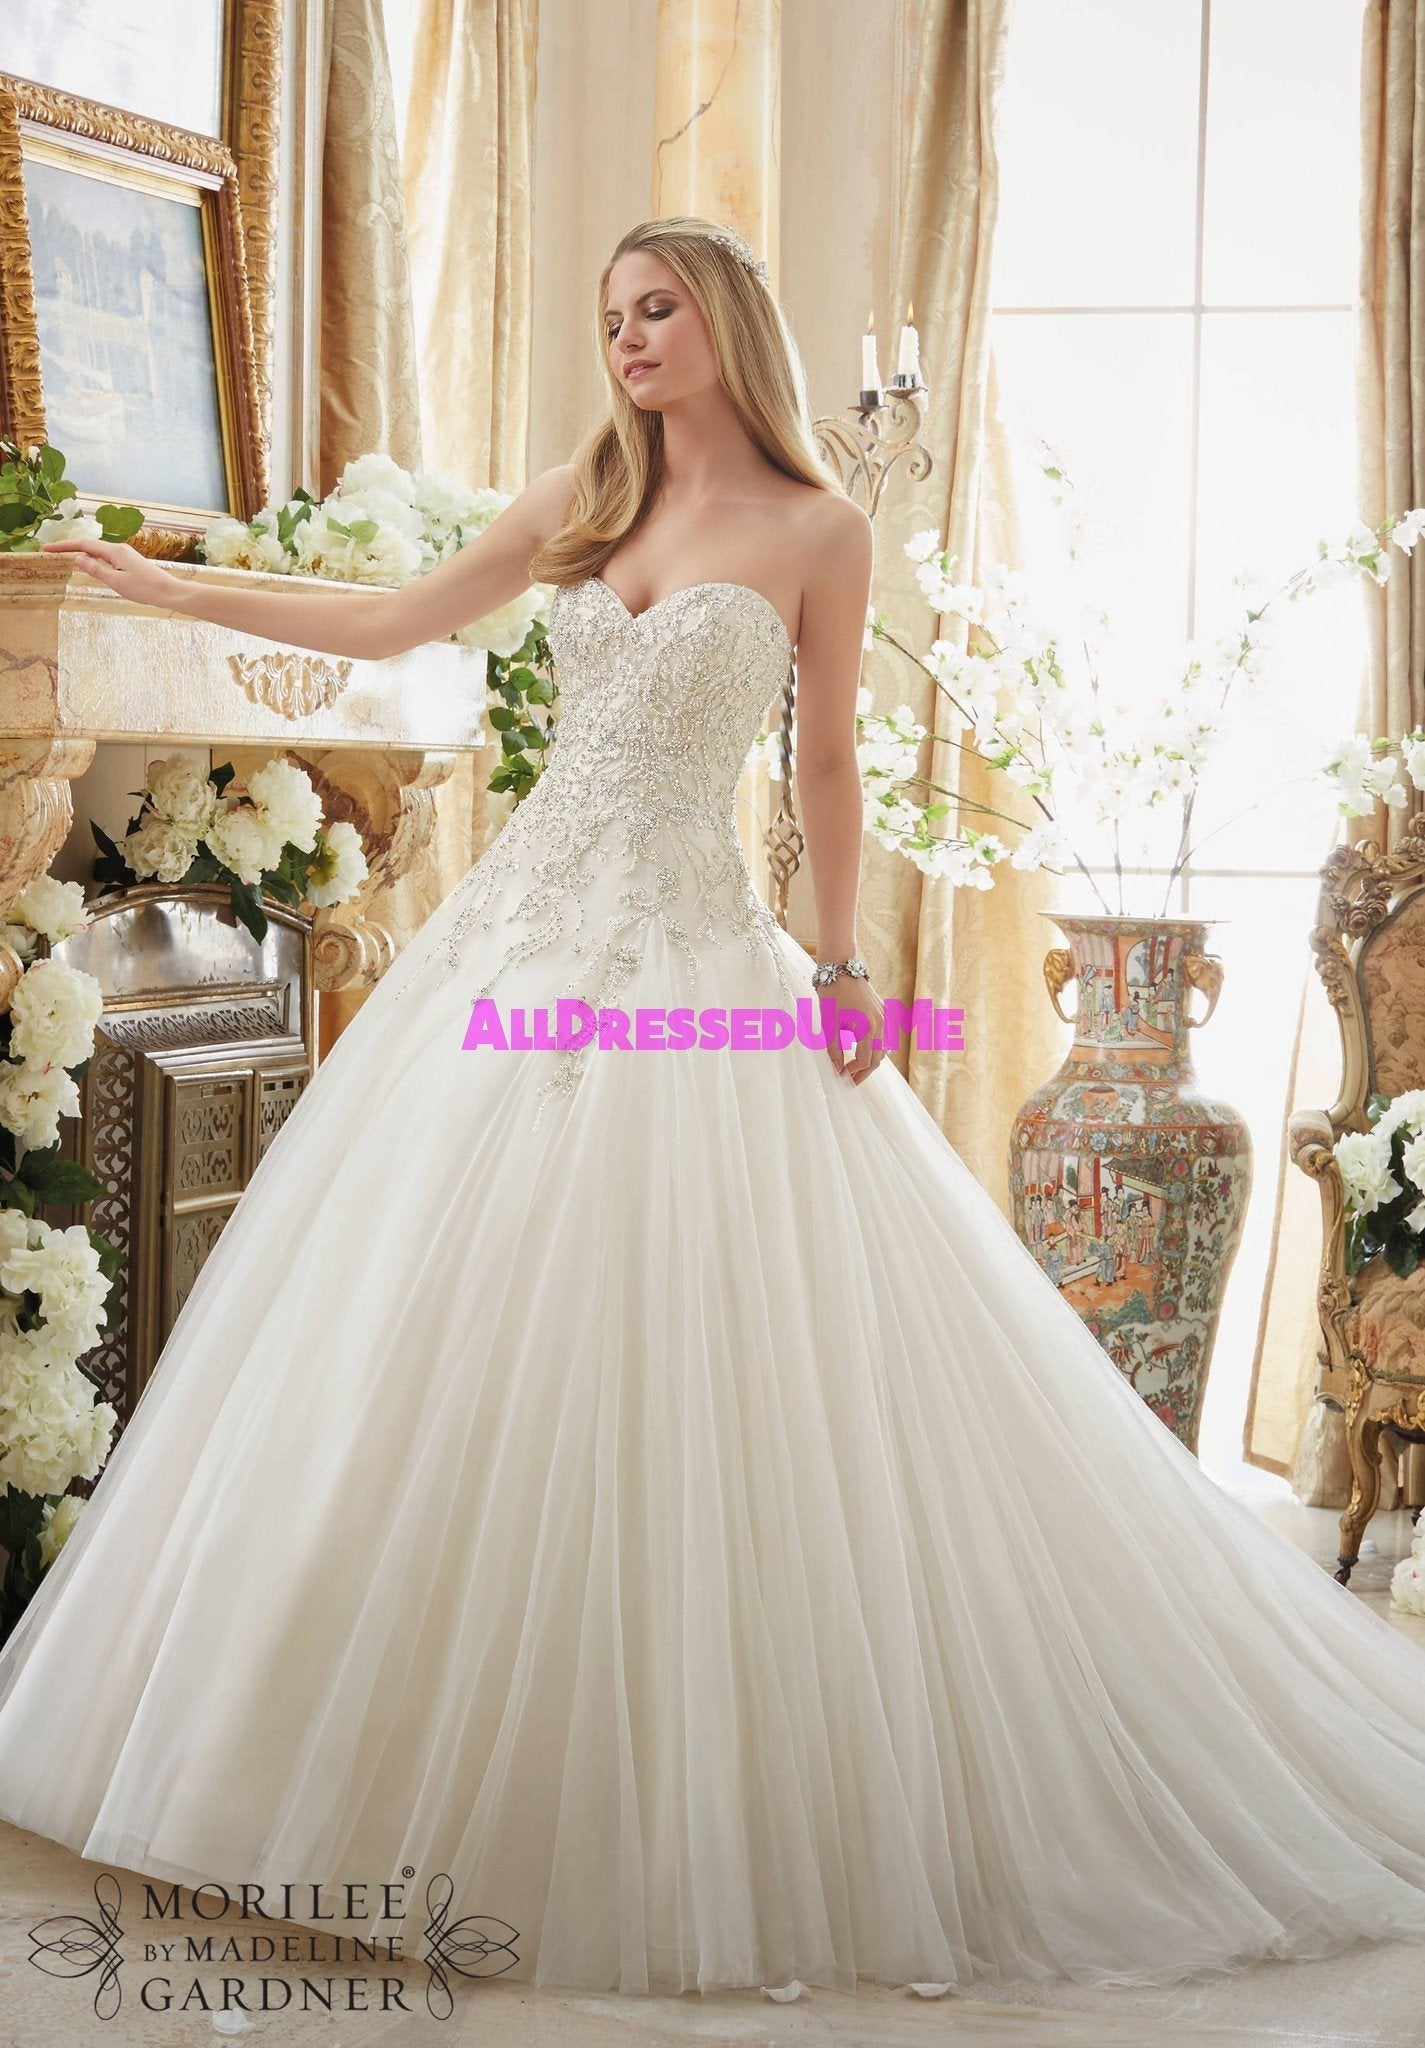 Mori Lee - 2892 - All Dressed Up, Bridal Gown - All Dressed Up ...